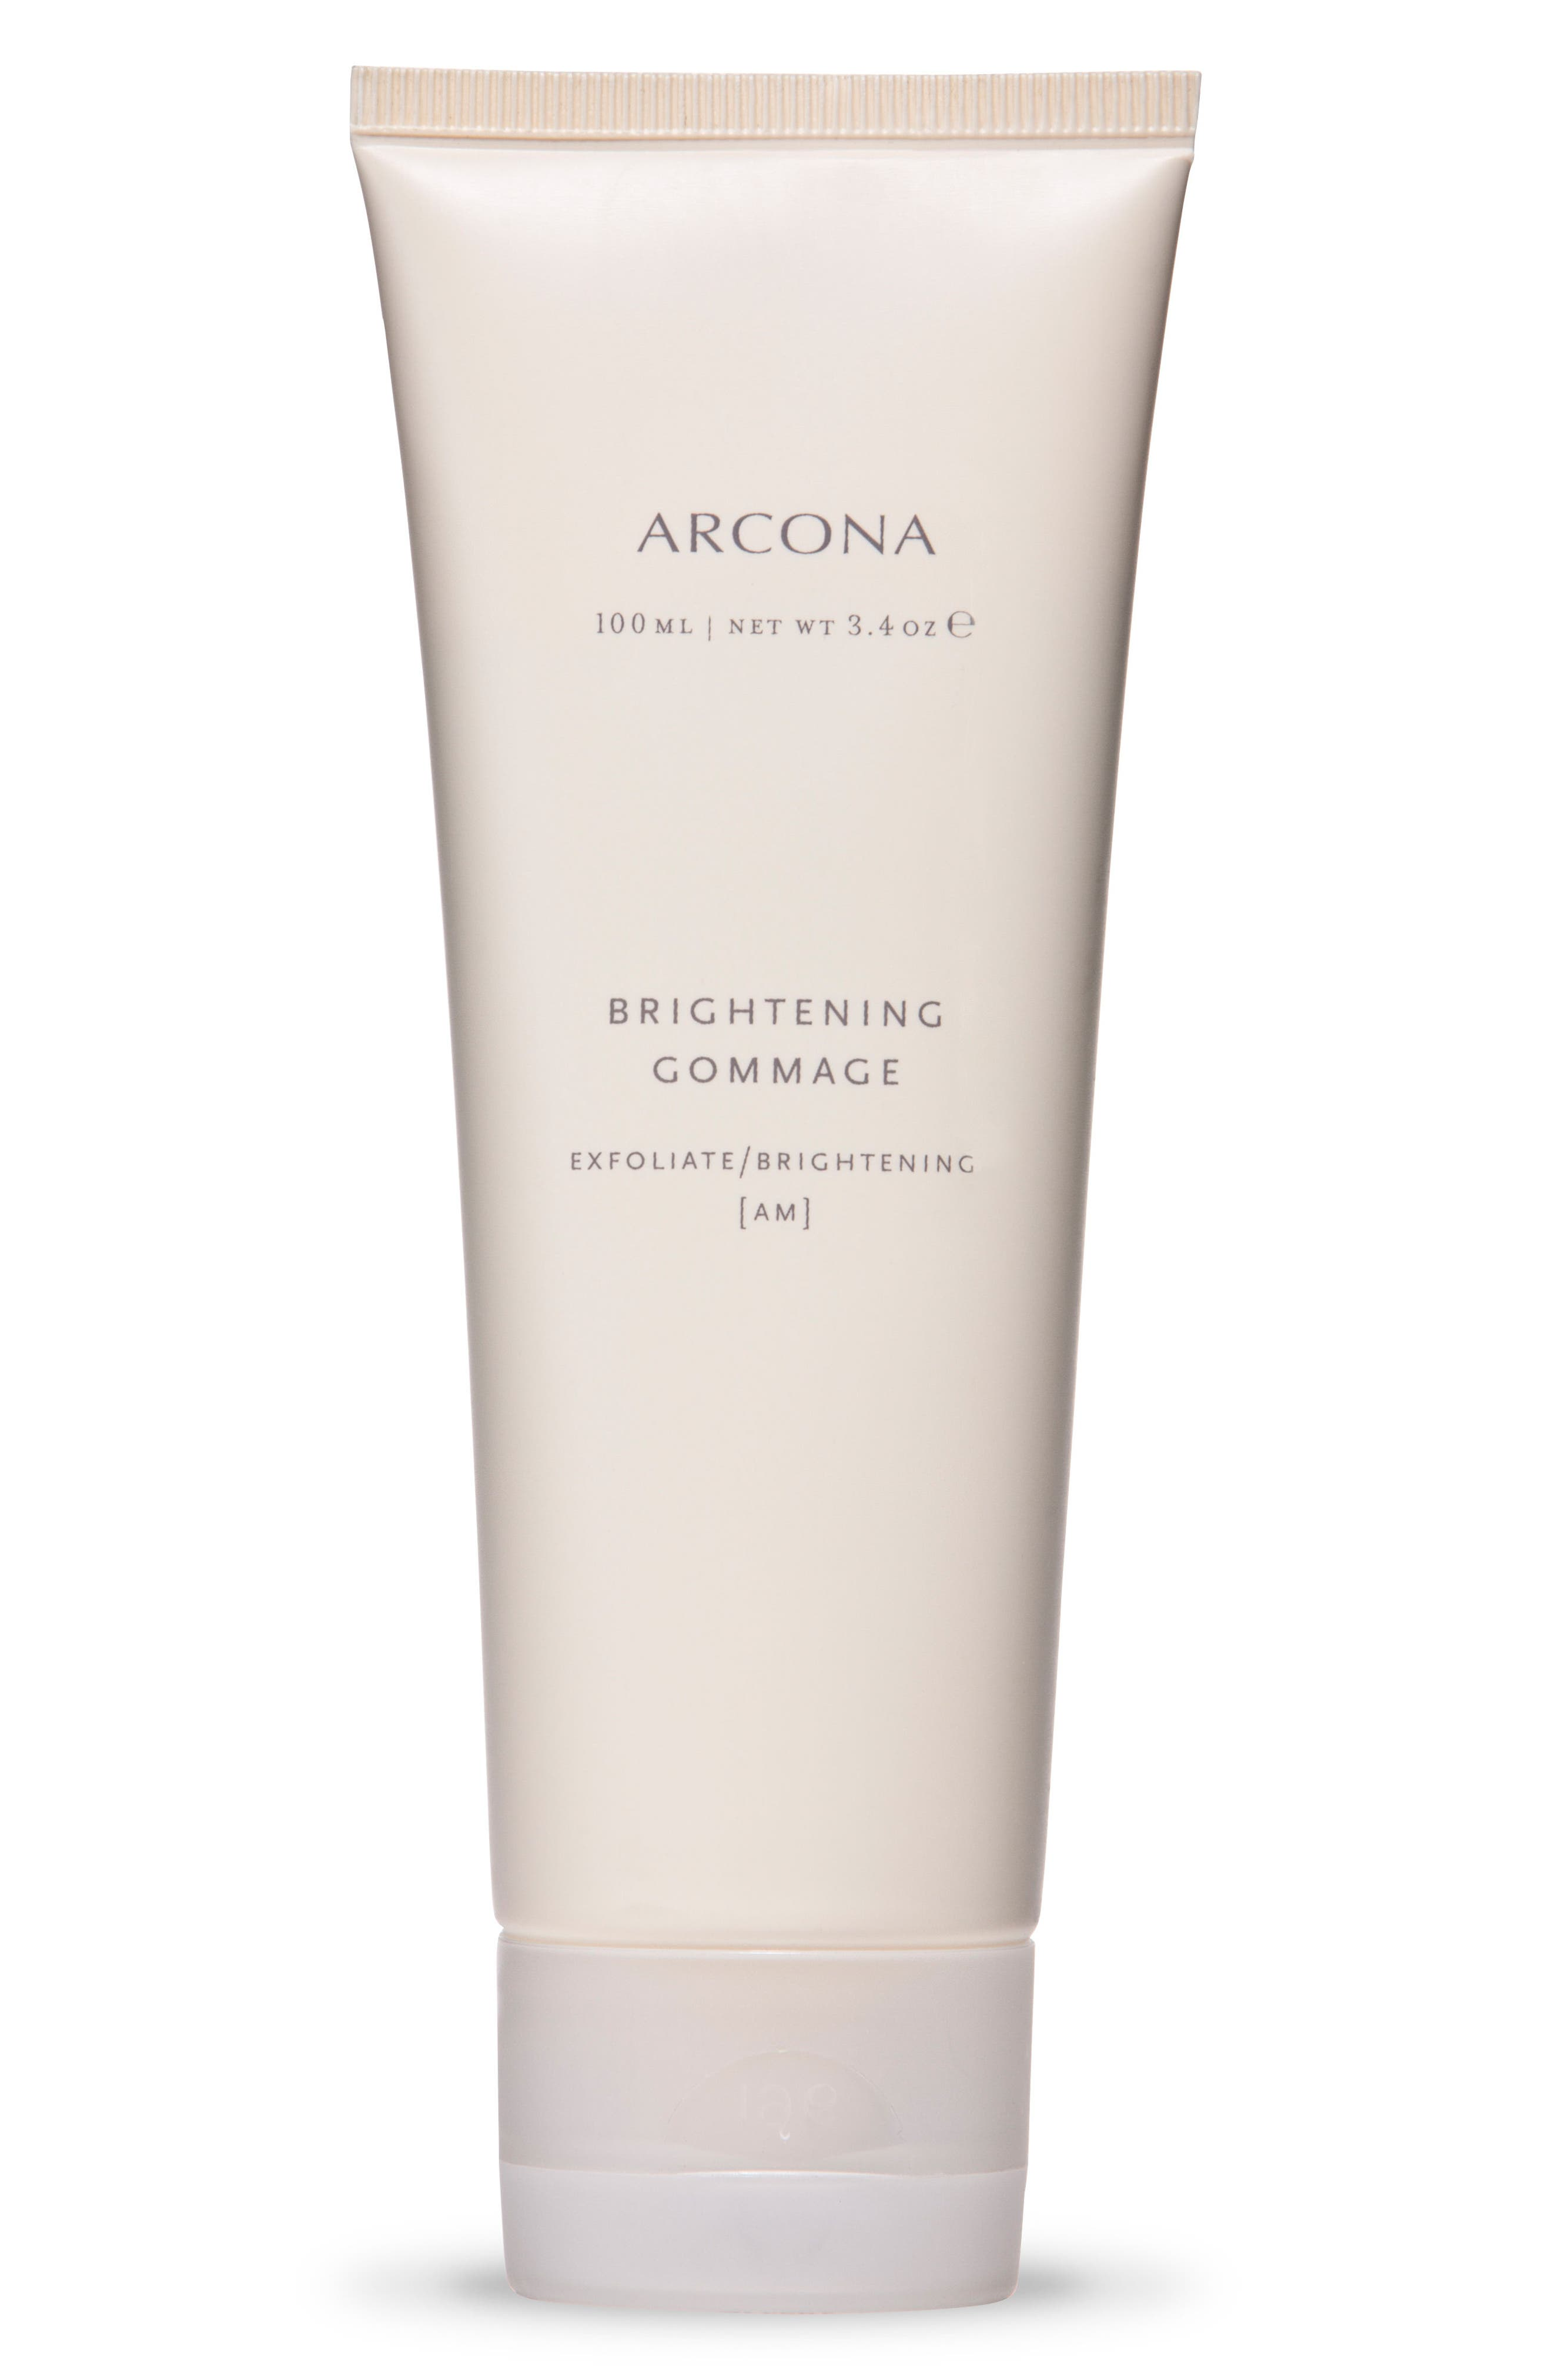 Alternate Image 1 Selected - ARCONA Brightening Gommage Exfoliator